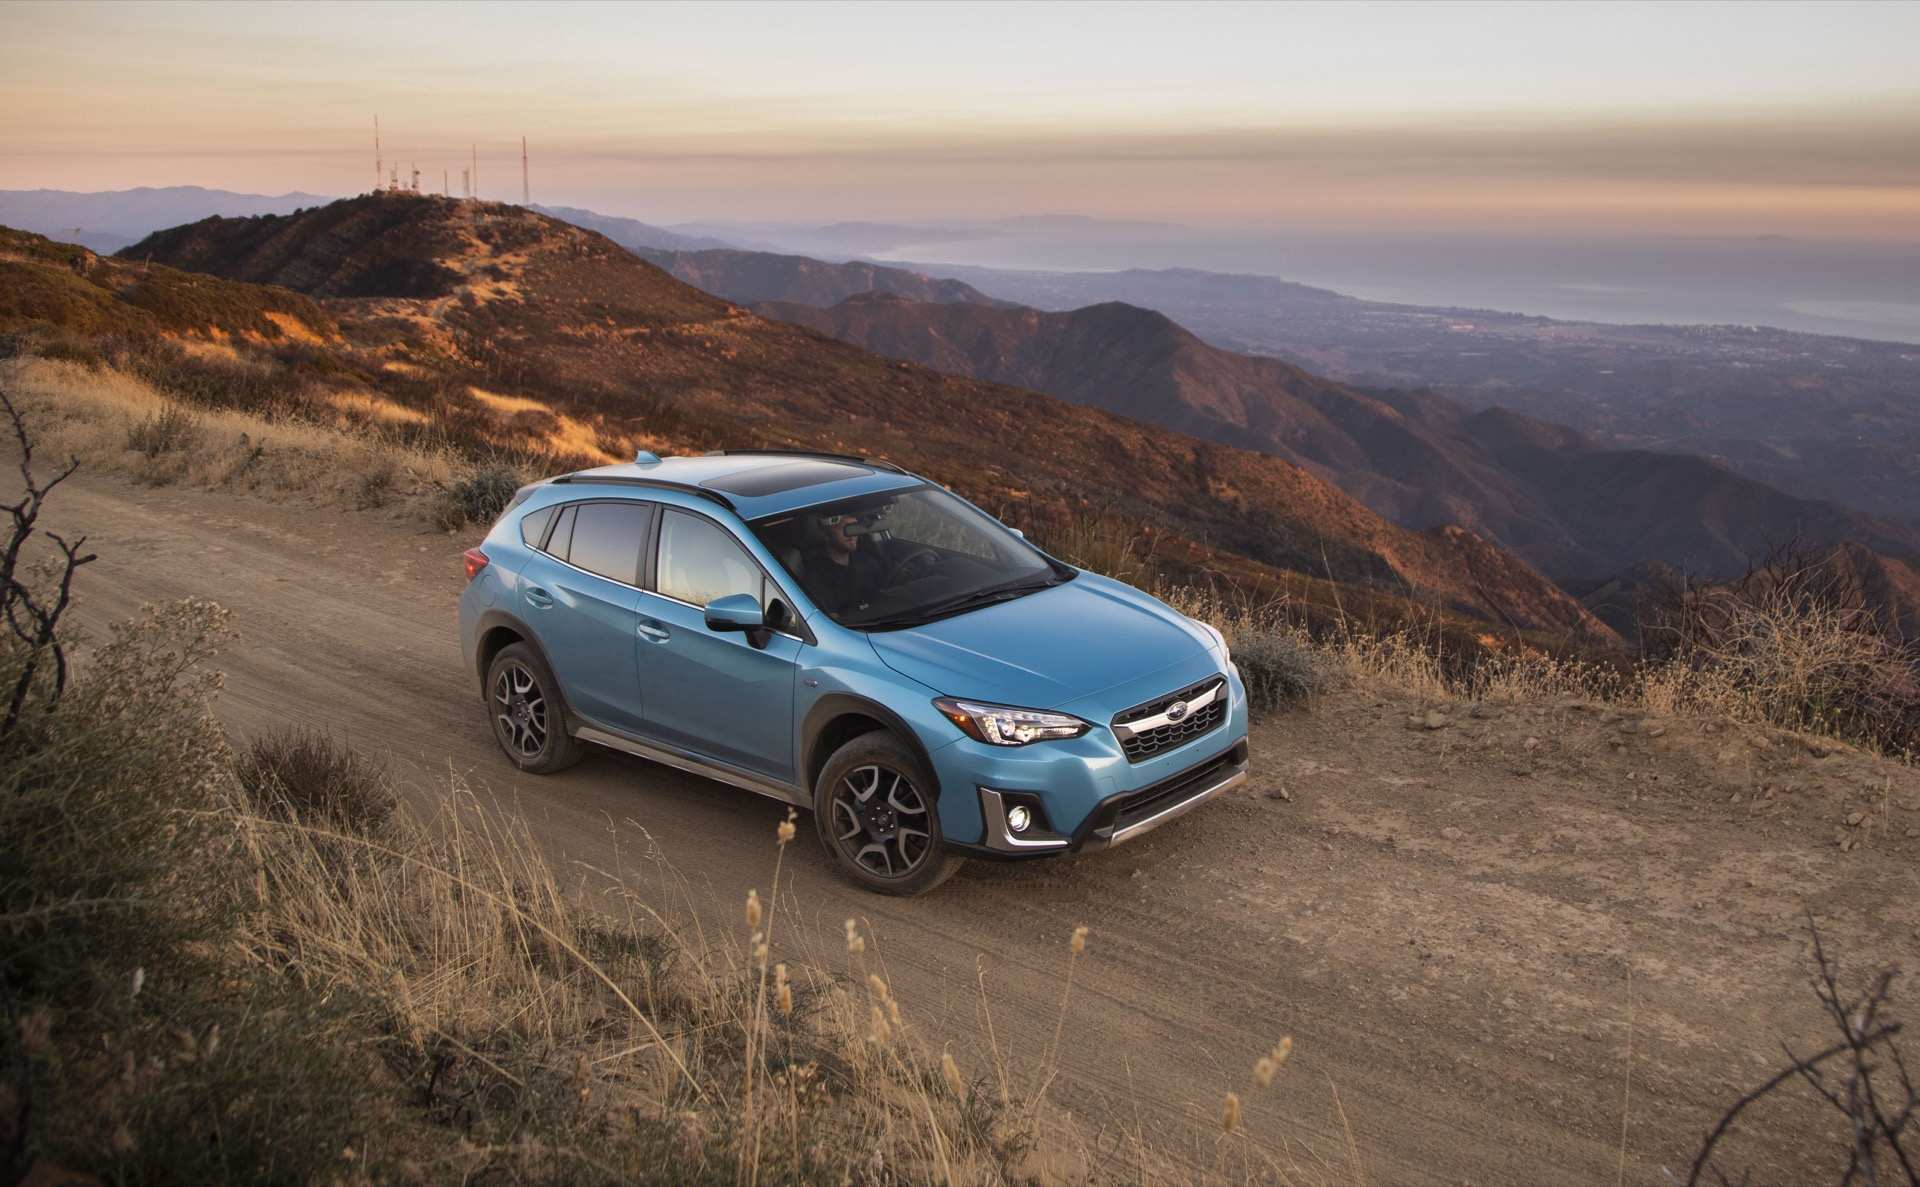 37 Great The 2019 Subaru Hybrid Mpg Release Date Exterior and Interior with The 2019 Subaru Hybrid Mpg Release Date